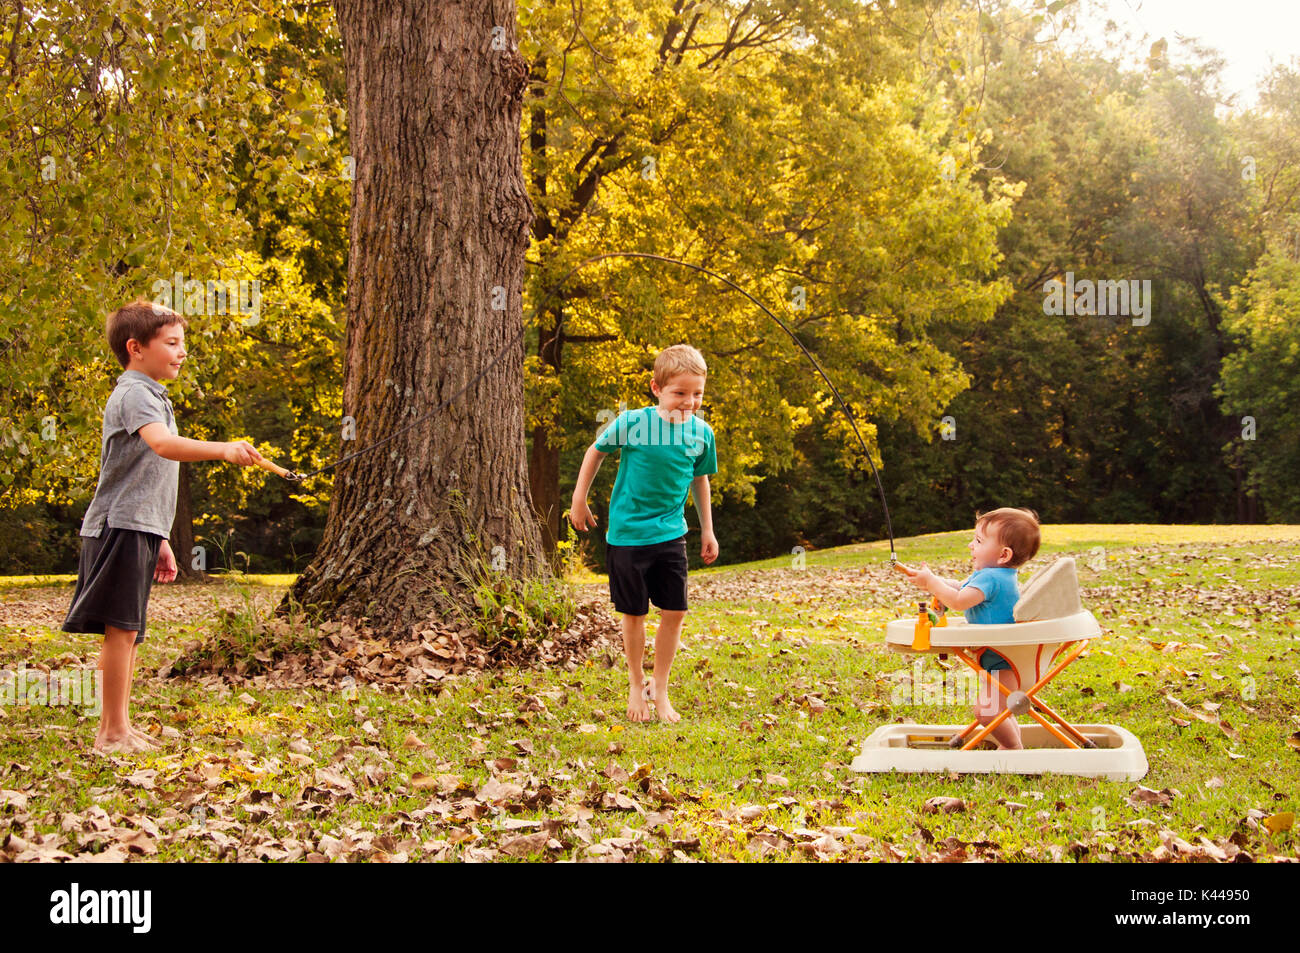 two boys playing jump rope with their baby brother - Stock Image